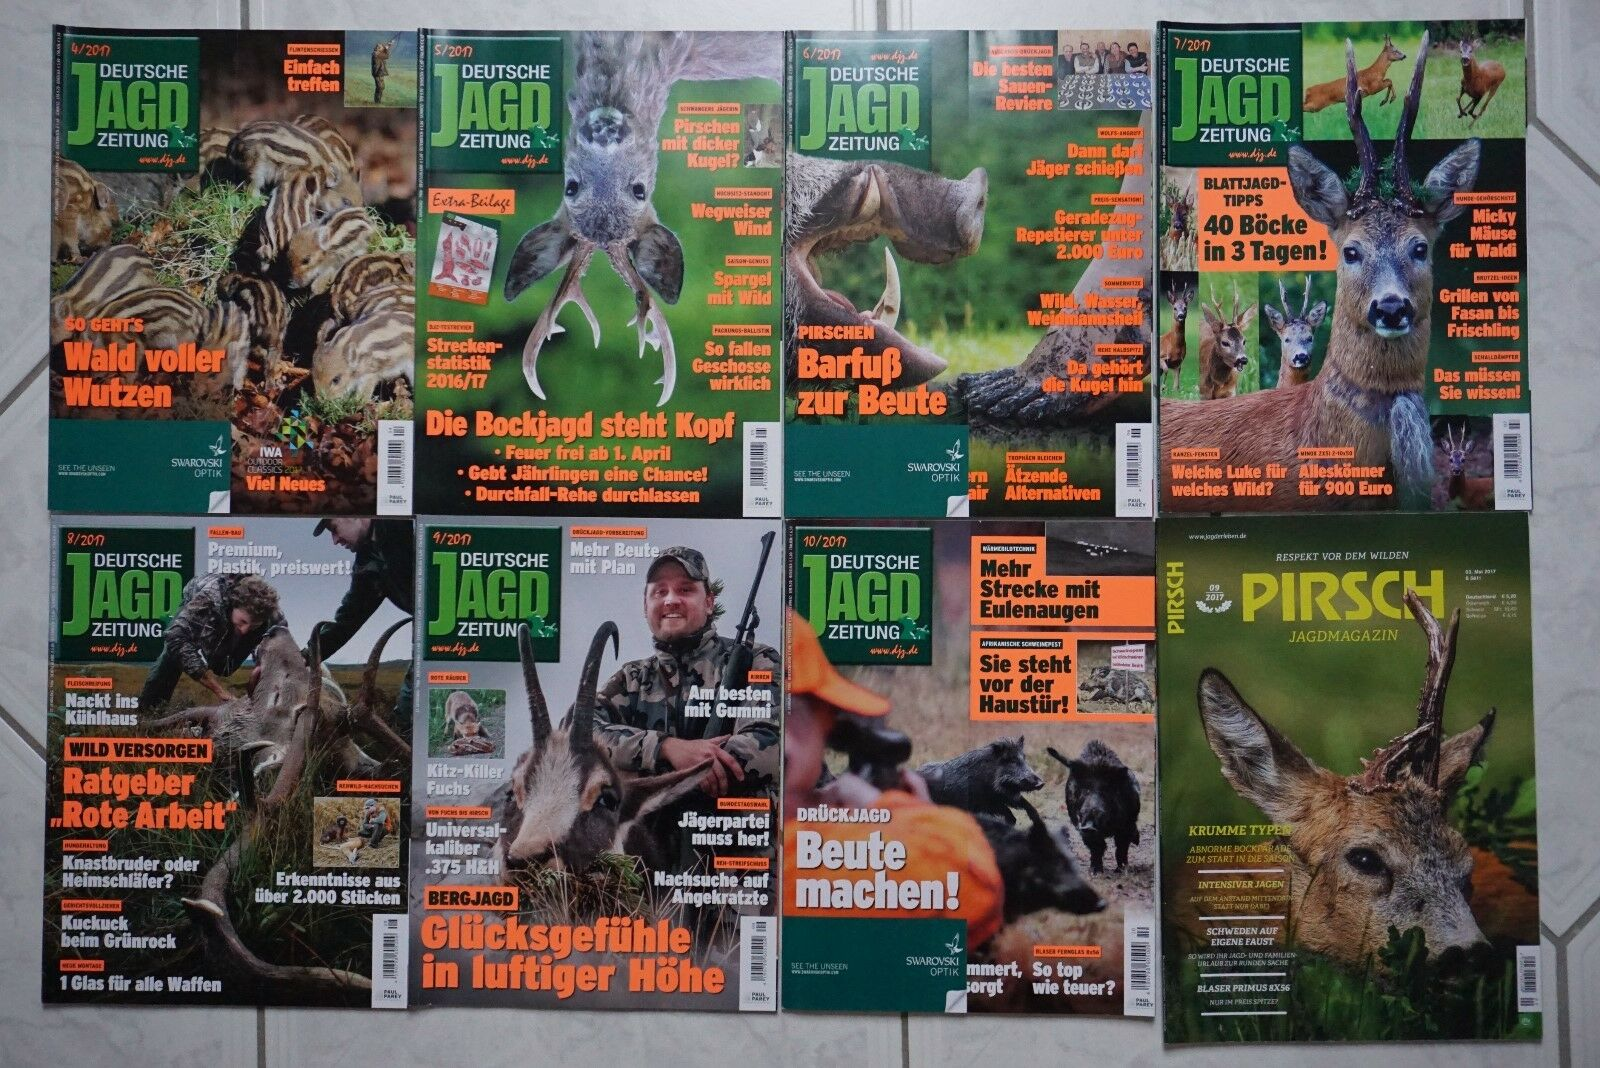 8 zeitschriften deutsche jagd zeitung pirsch sammlung 2017 djz jagdmagazin jagd picclick de. Black Bedroom Furniture Sets. Home Design Ideas